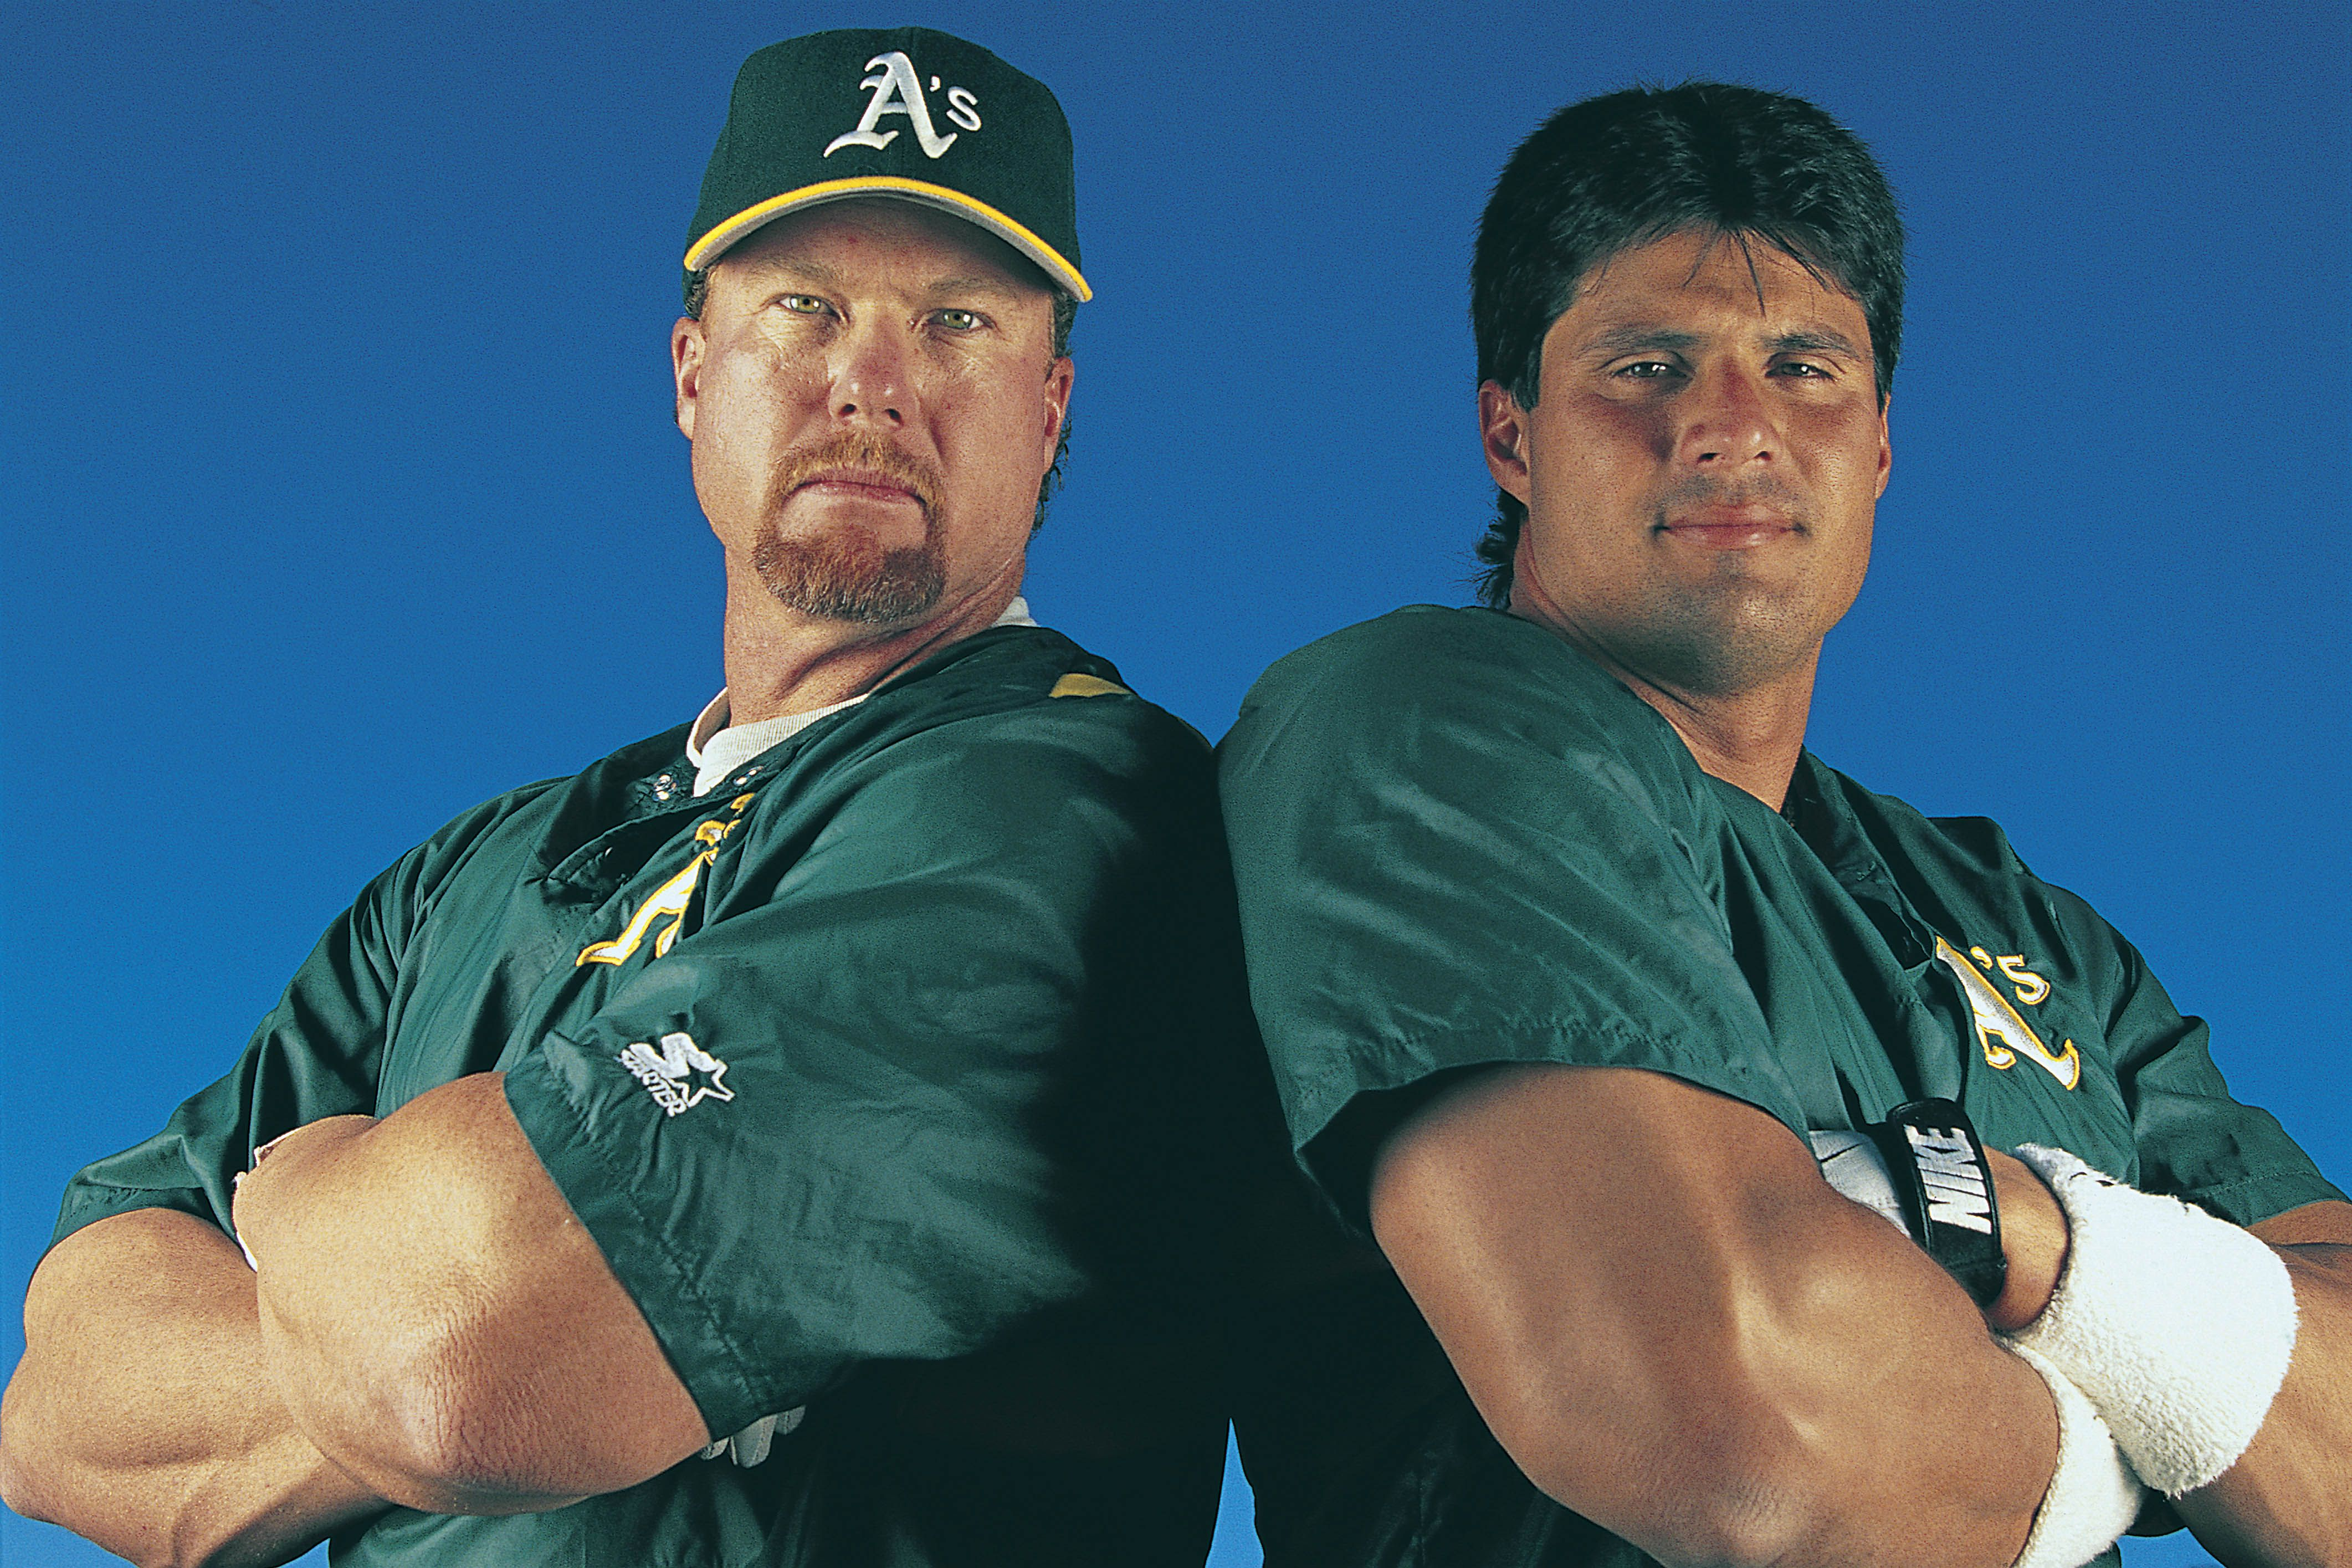 The Bash Brothers